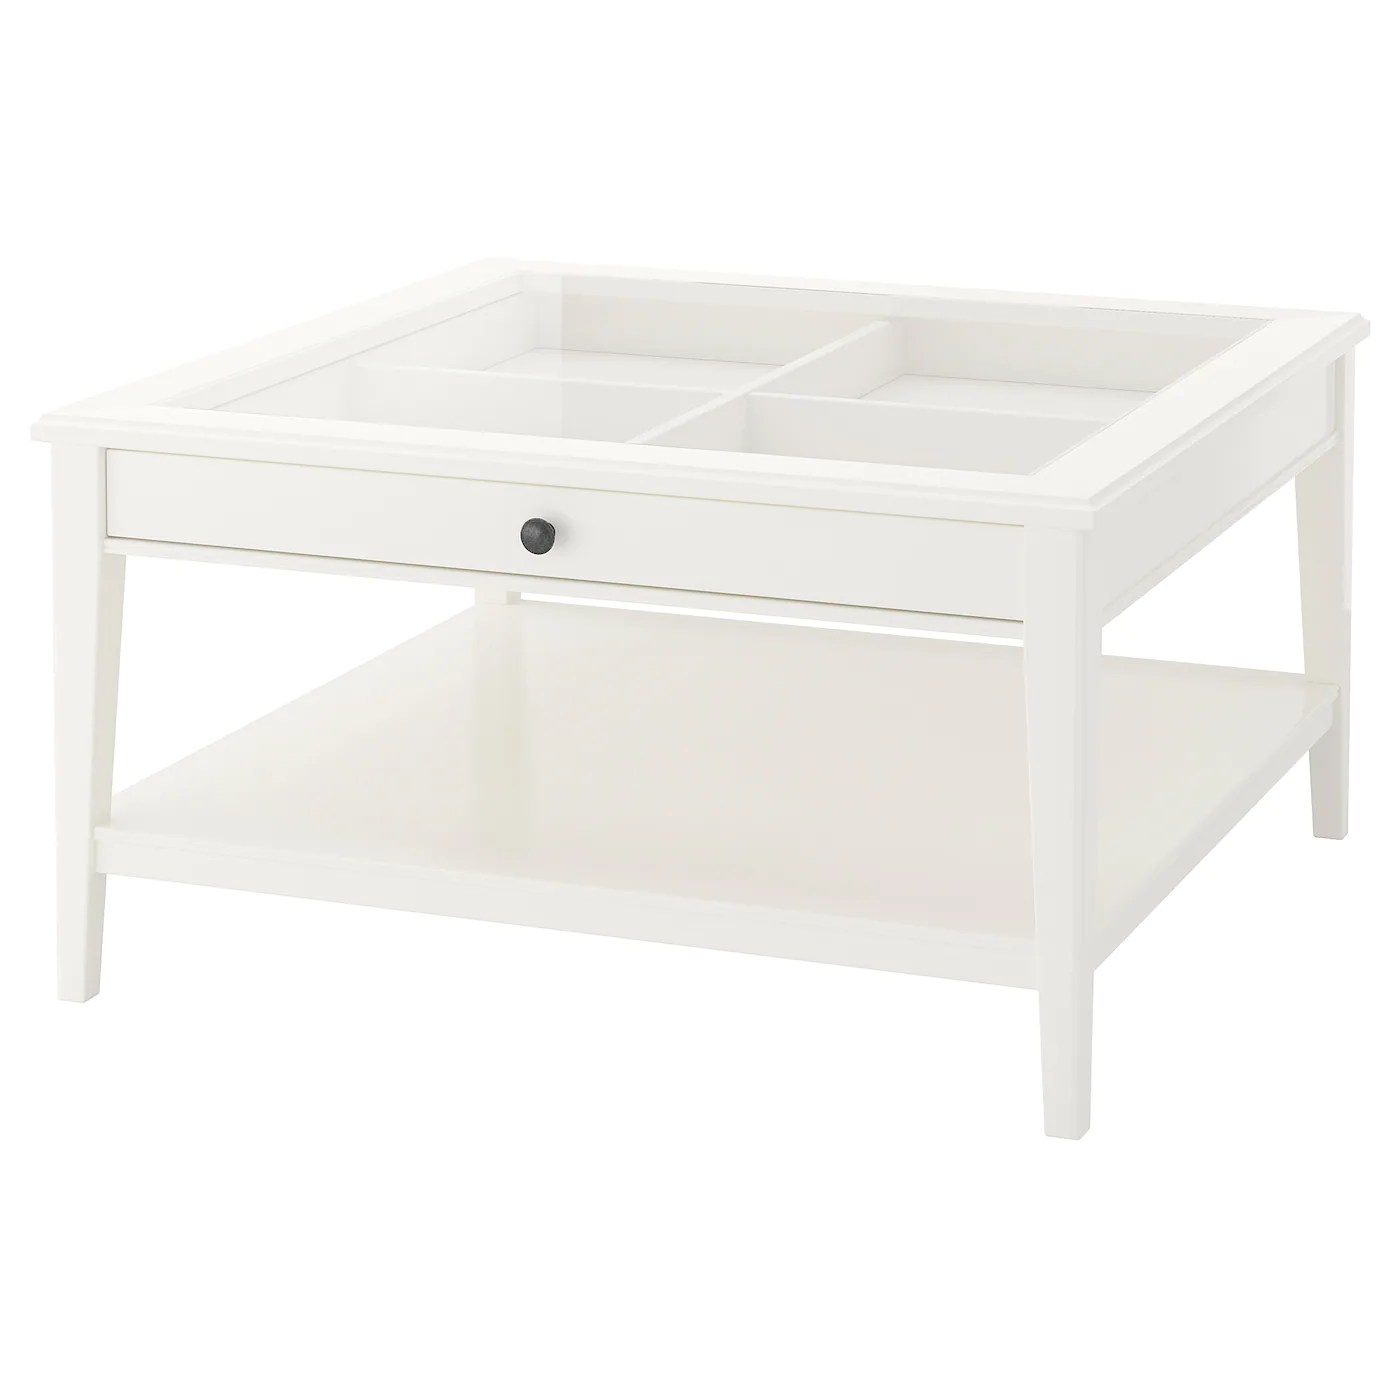 table basse pas chere table d appoint